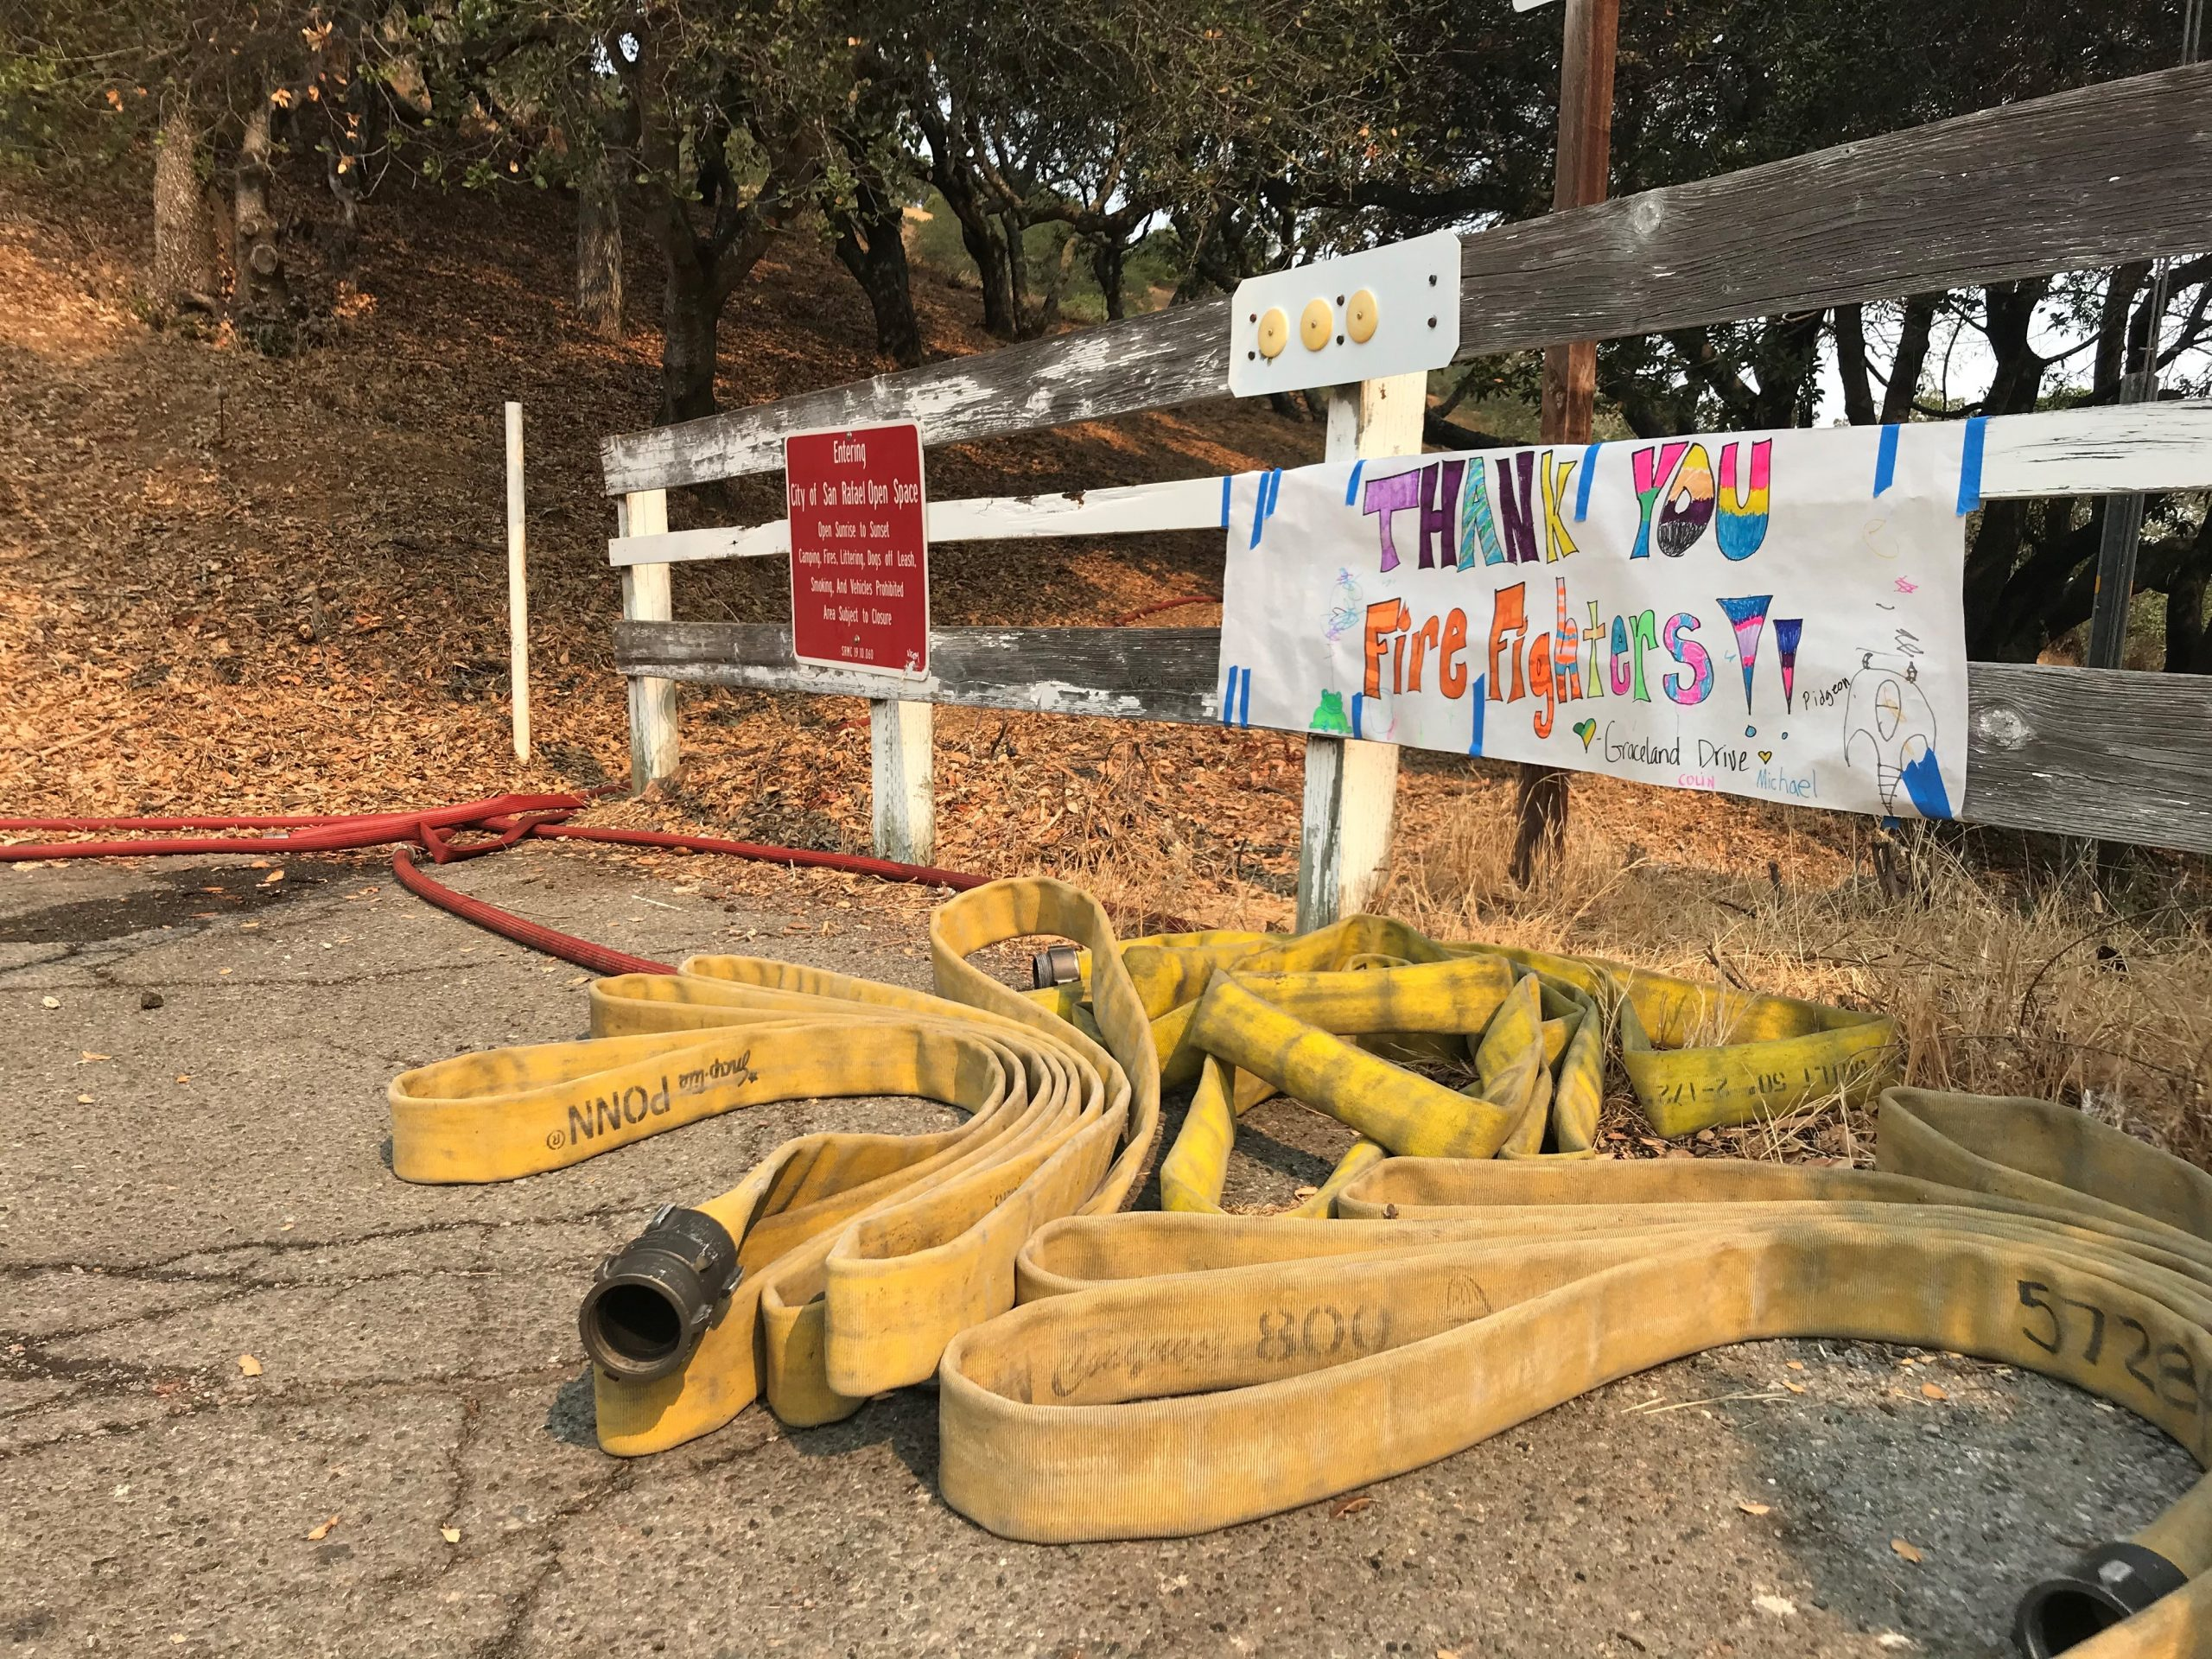 fire hose lays on the group in front of a hand written sign on a white fence that says Thank You Firefighters